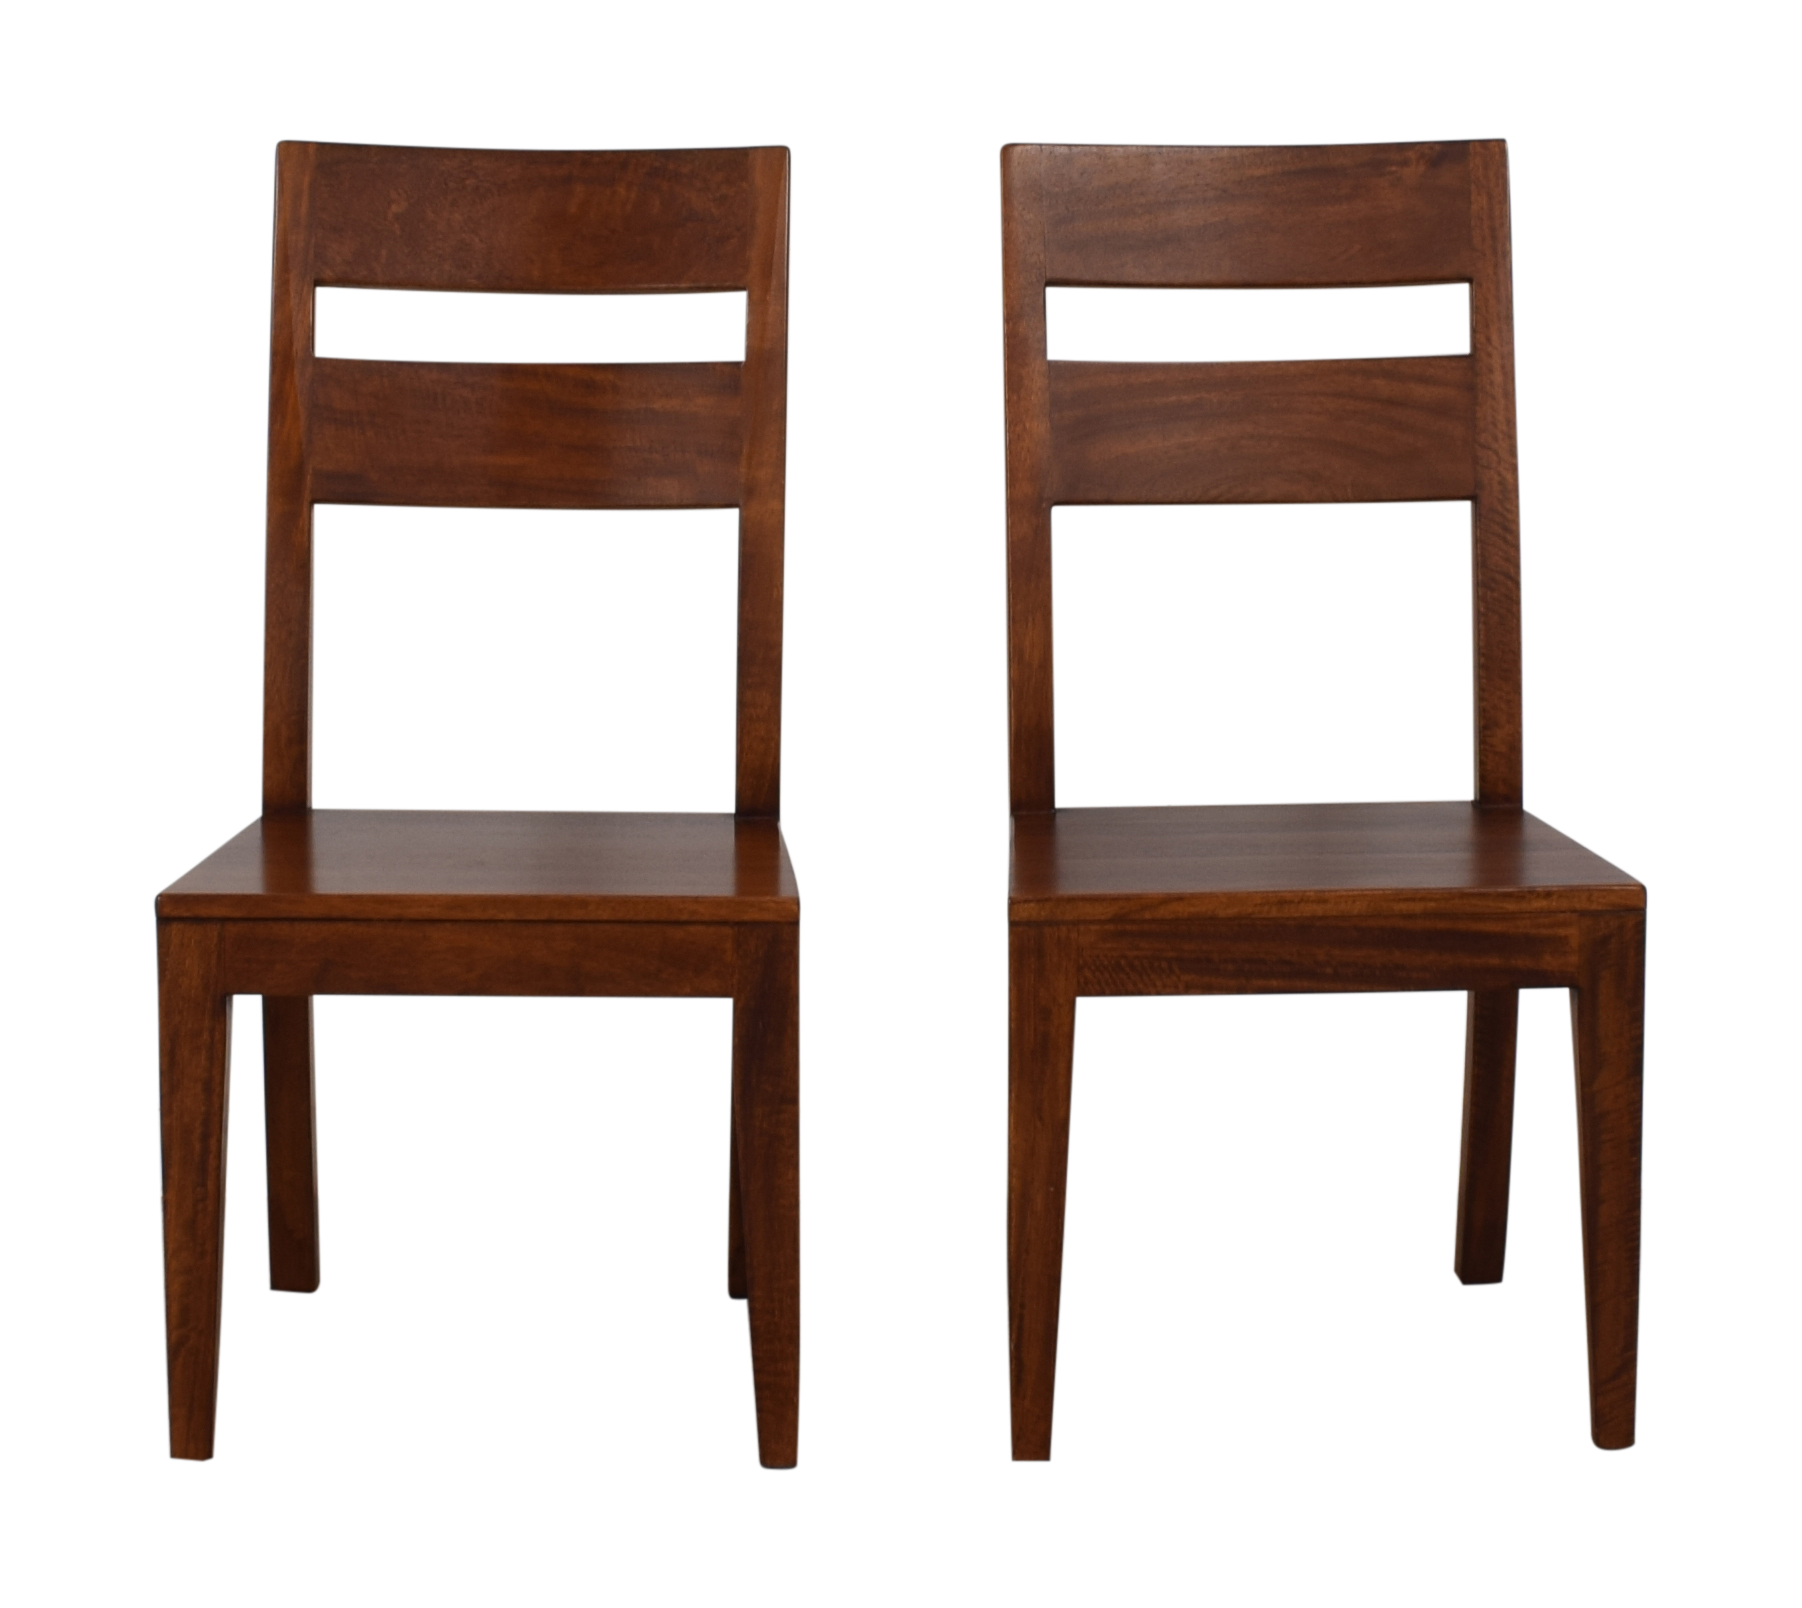 Crate & Barrel Crate & Barrel Basque Honey Wood Dining Chairs